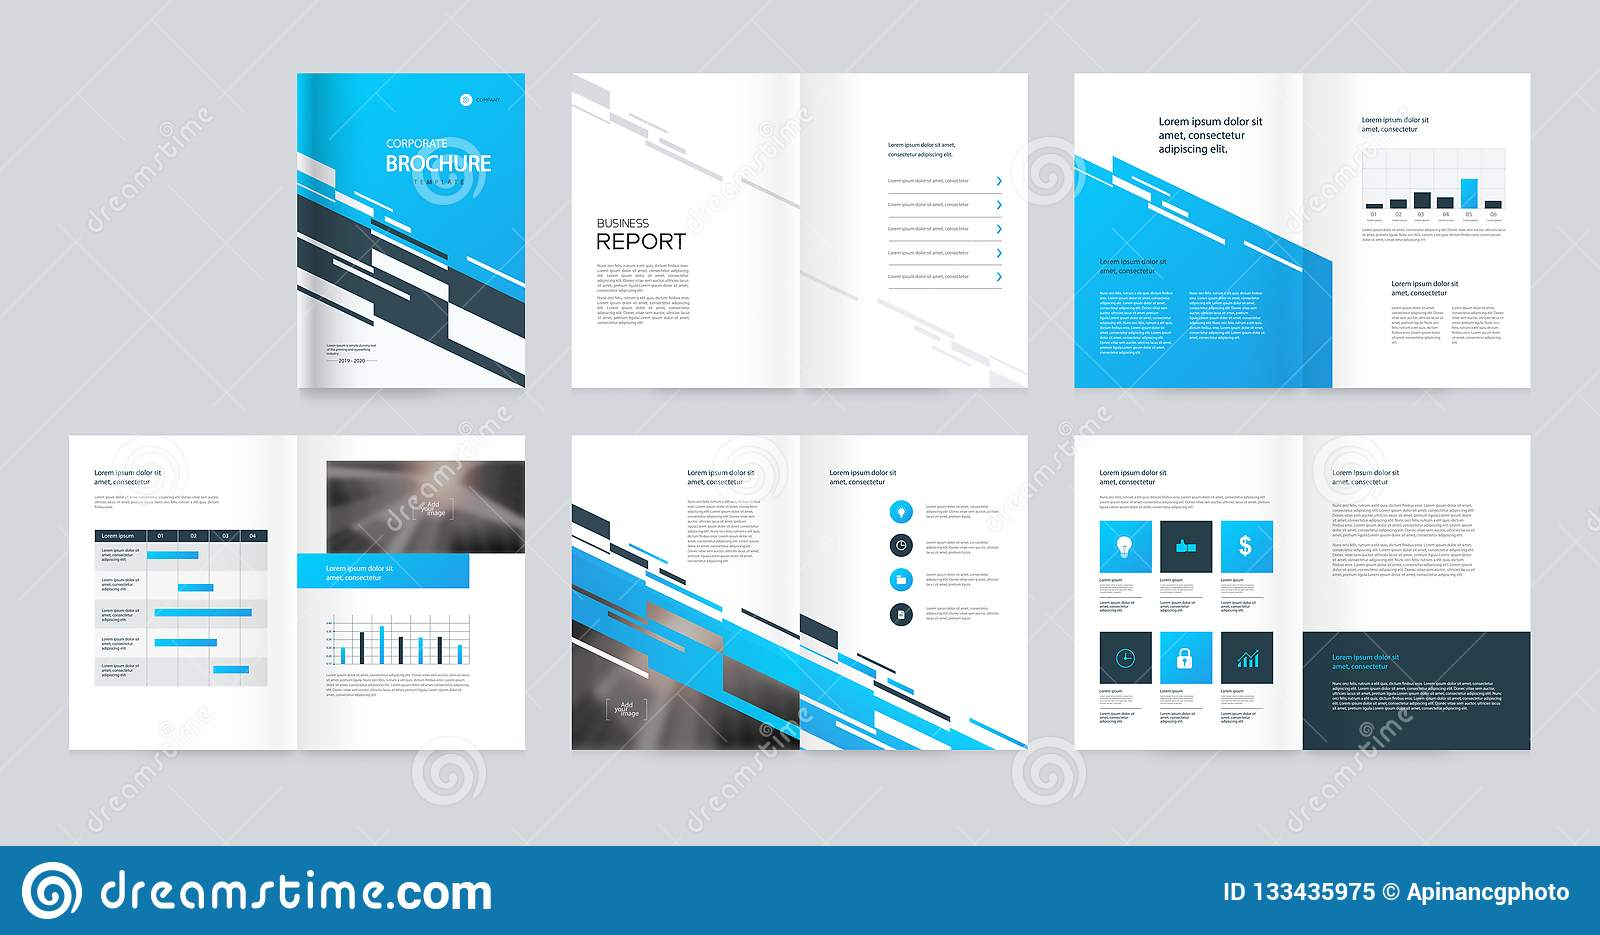 Template Layout Design With Cover Page For Company Profile Annual Report Brochures Proposal Flyers Leaflet Magazine Book Co Stock Vector Illustration Of Data Brochure 133435975